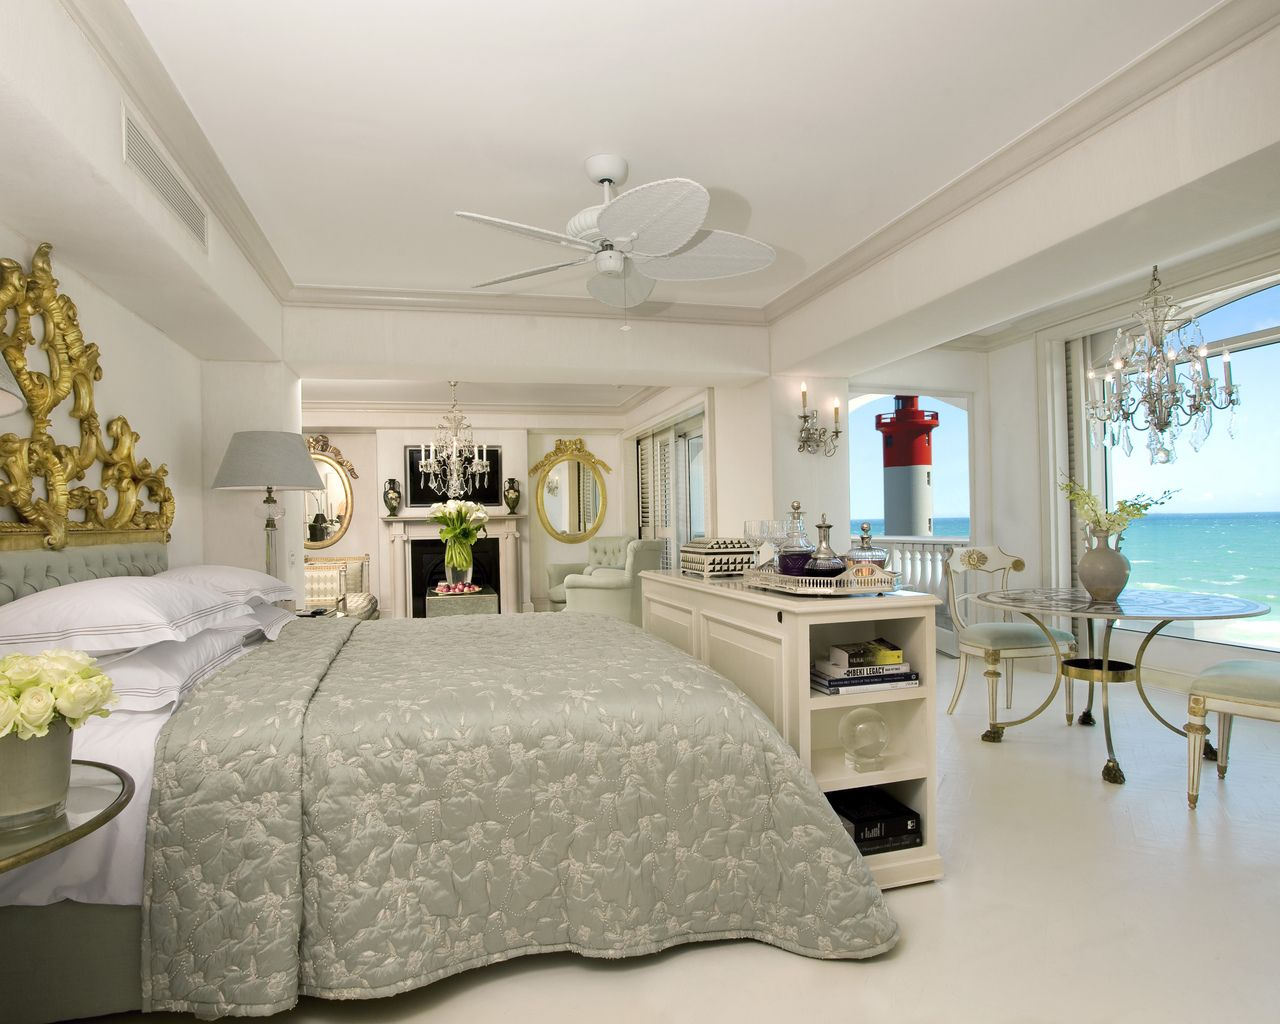 With 86 luxurious rooms, suites and villas to choose from, The Oyster Box will not disappoint in combining old world charm with modern luxury. Chat to our team 0860 119 119 to book tour #mtbedsLuxuryTravel getaway